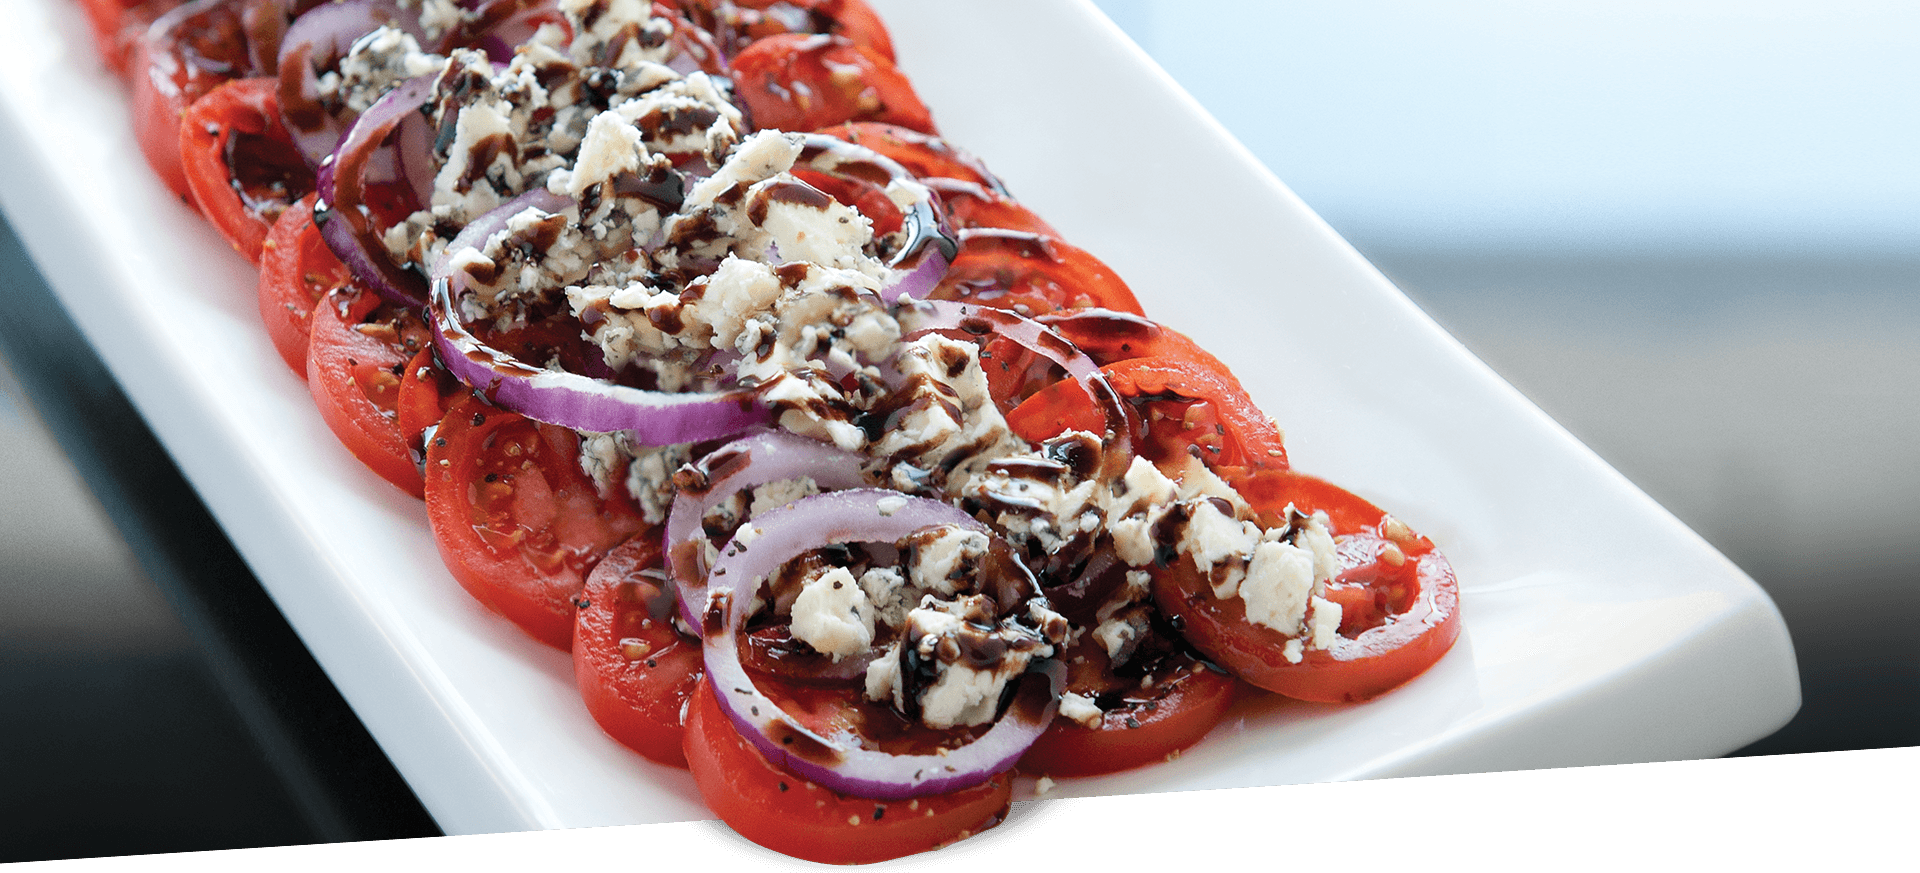 Sliced Tomatoes with Blue Cheese header BG